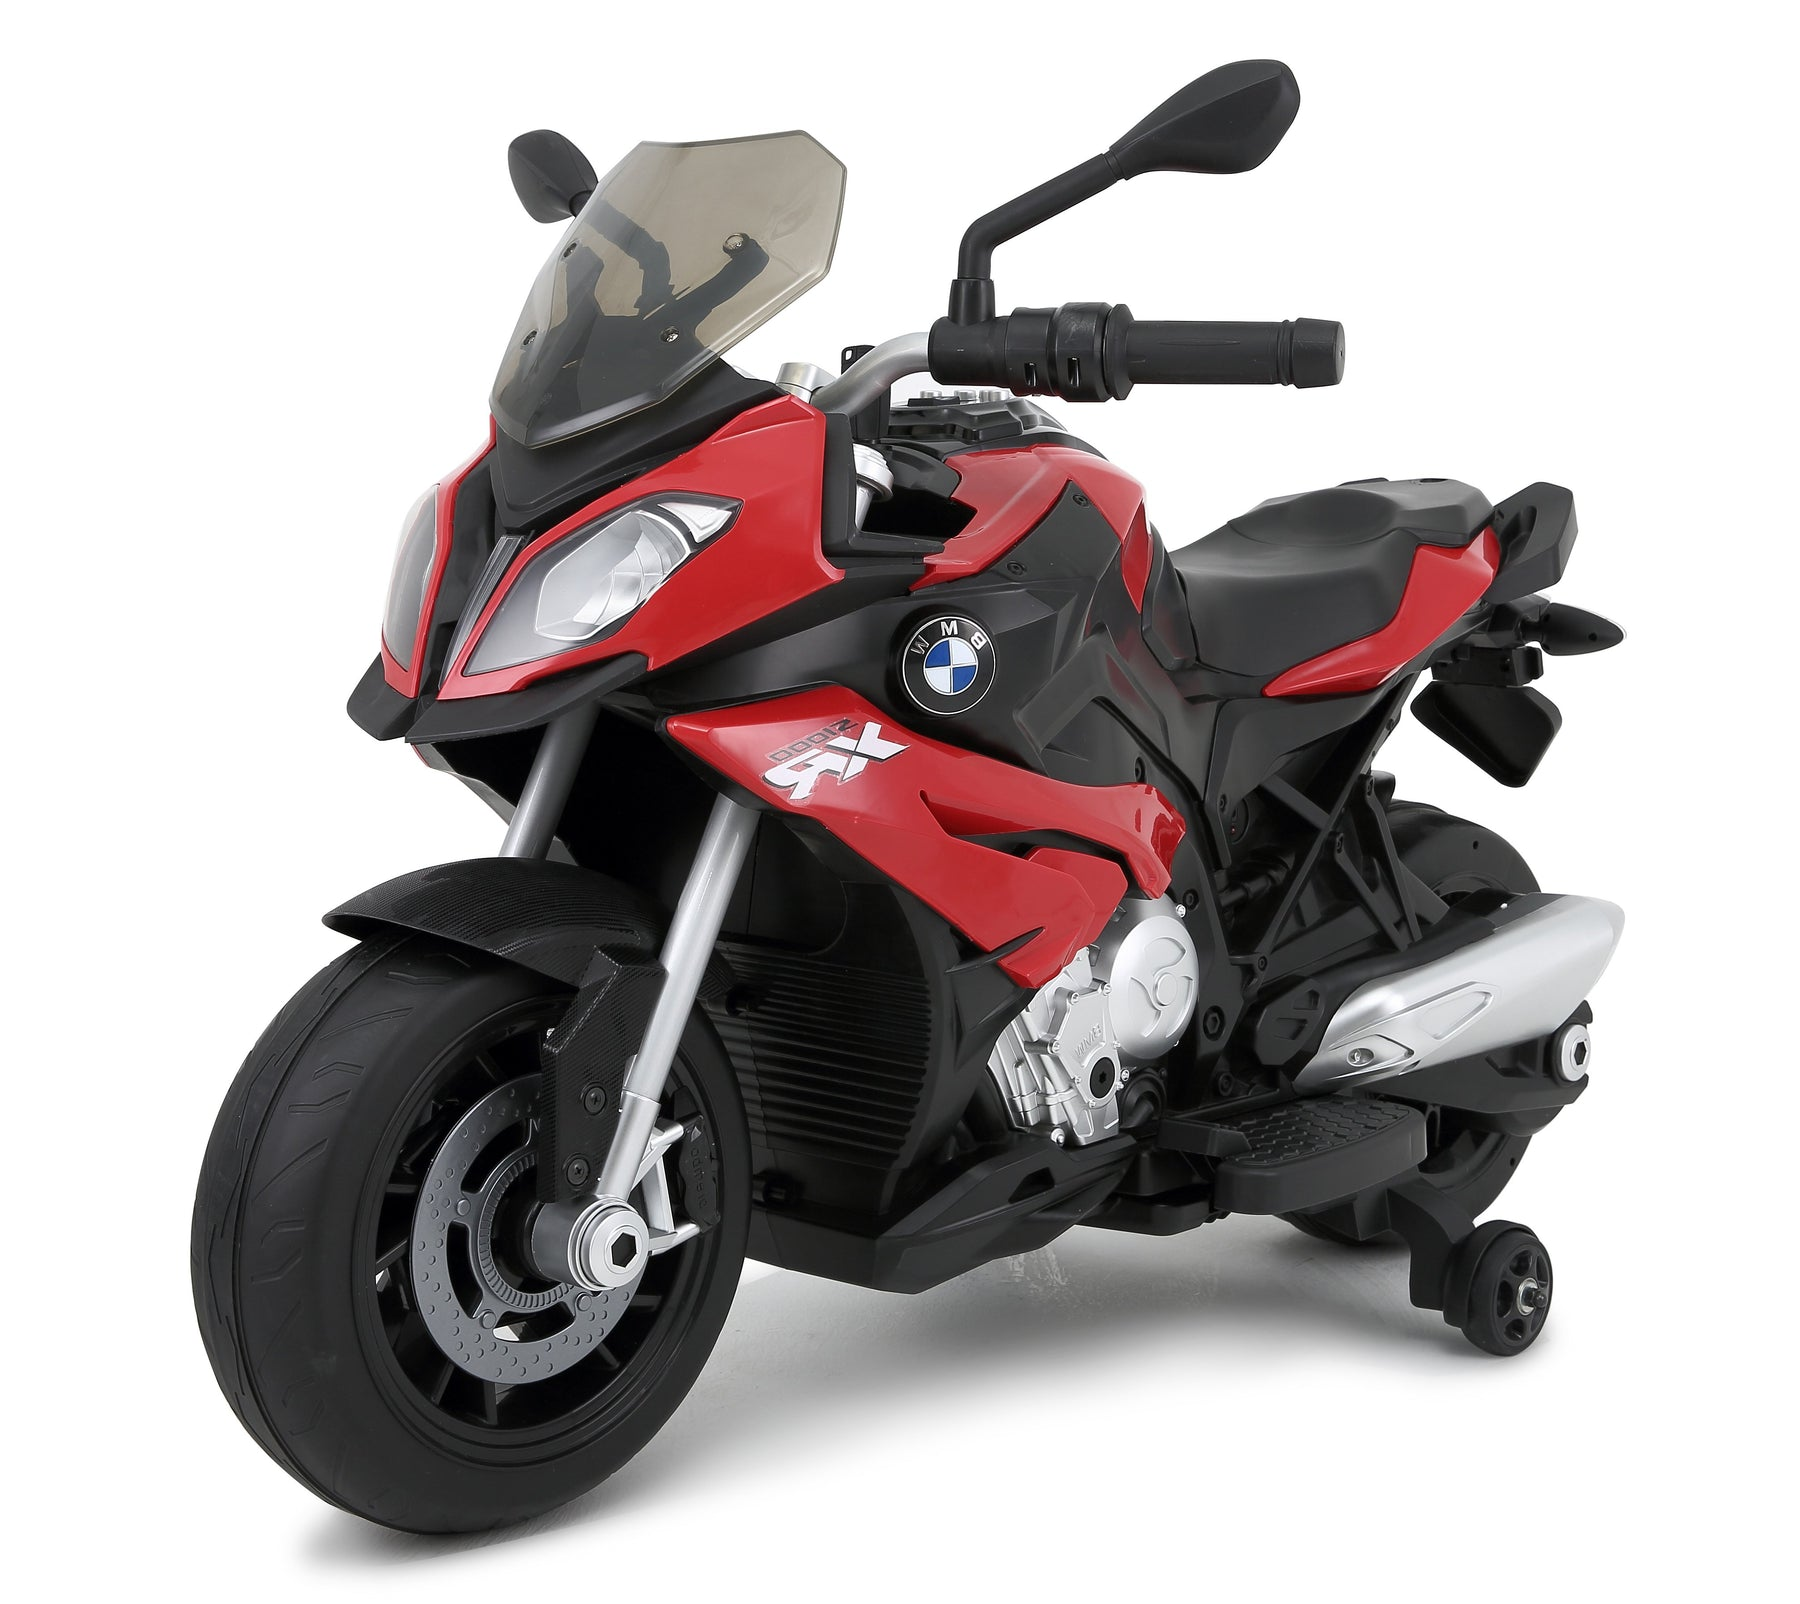 BMW S1000XR Licenced 12V 7A  Battery Powered Kids Electric Ride On Toy Motorcycle Road Bike (RS87700 RED) - GADGET EXPRESS®